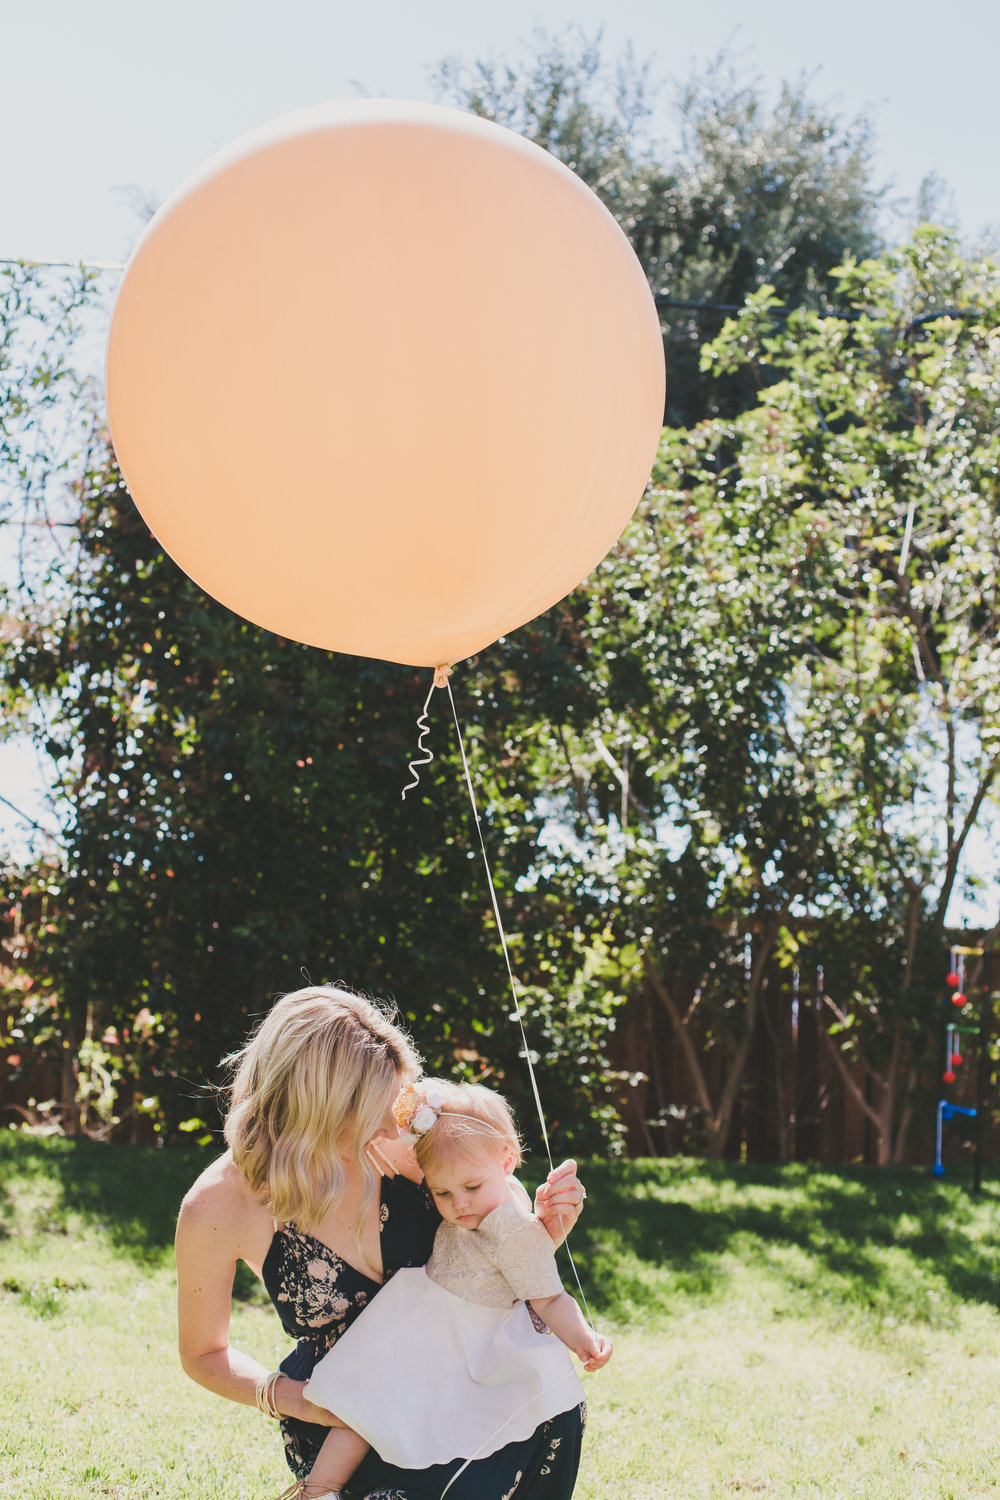 First Birthday Party Ideas - A Vintage Chic Pi Day Themed 1st Birthday Party | Ava's First Birthday